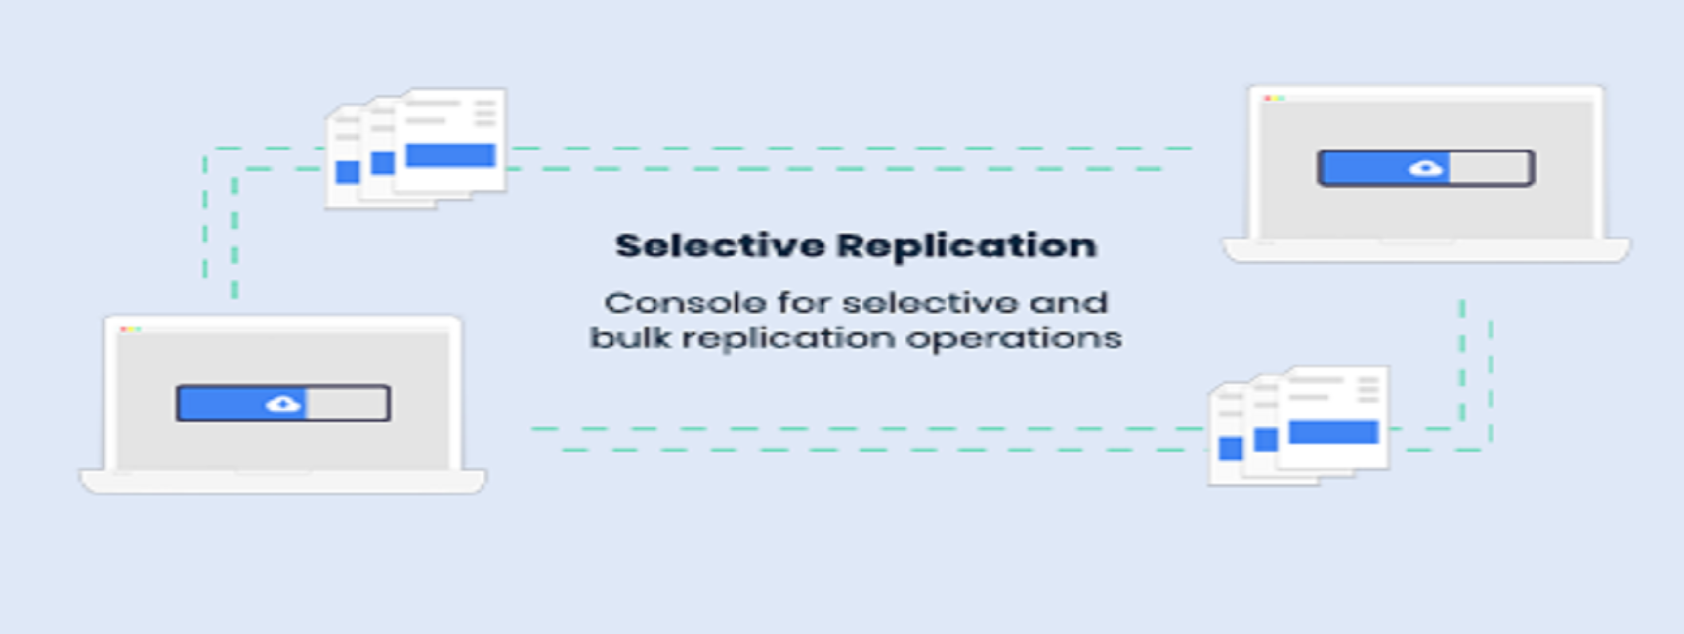 Selective Replication: Bulk content replication made easier with the use of ADX Tools extension in AEM